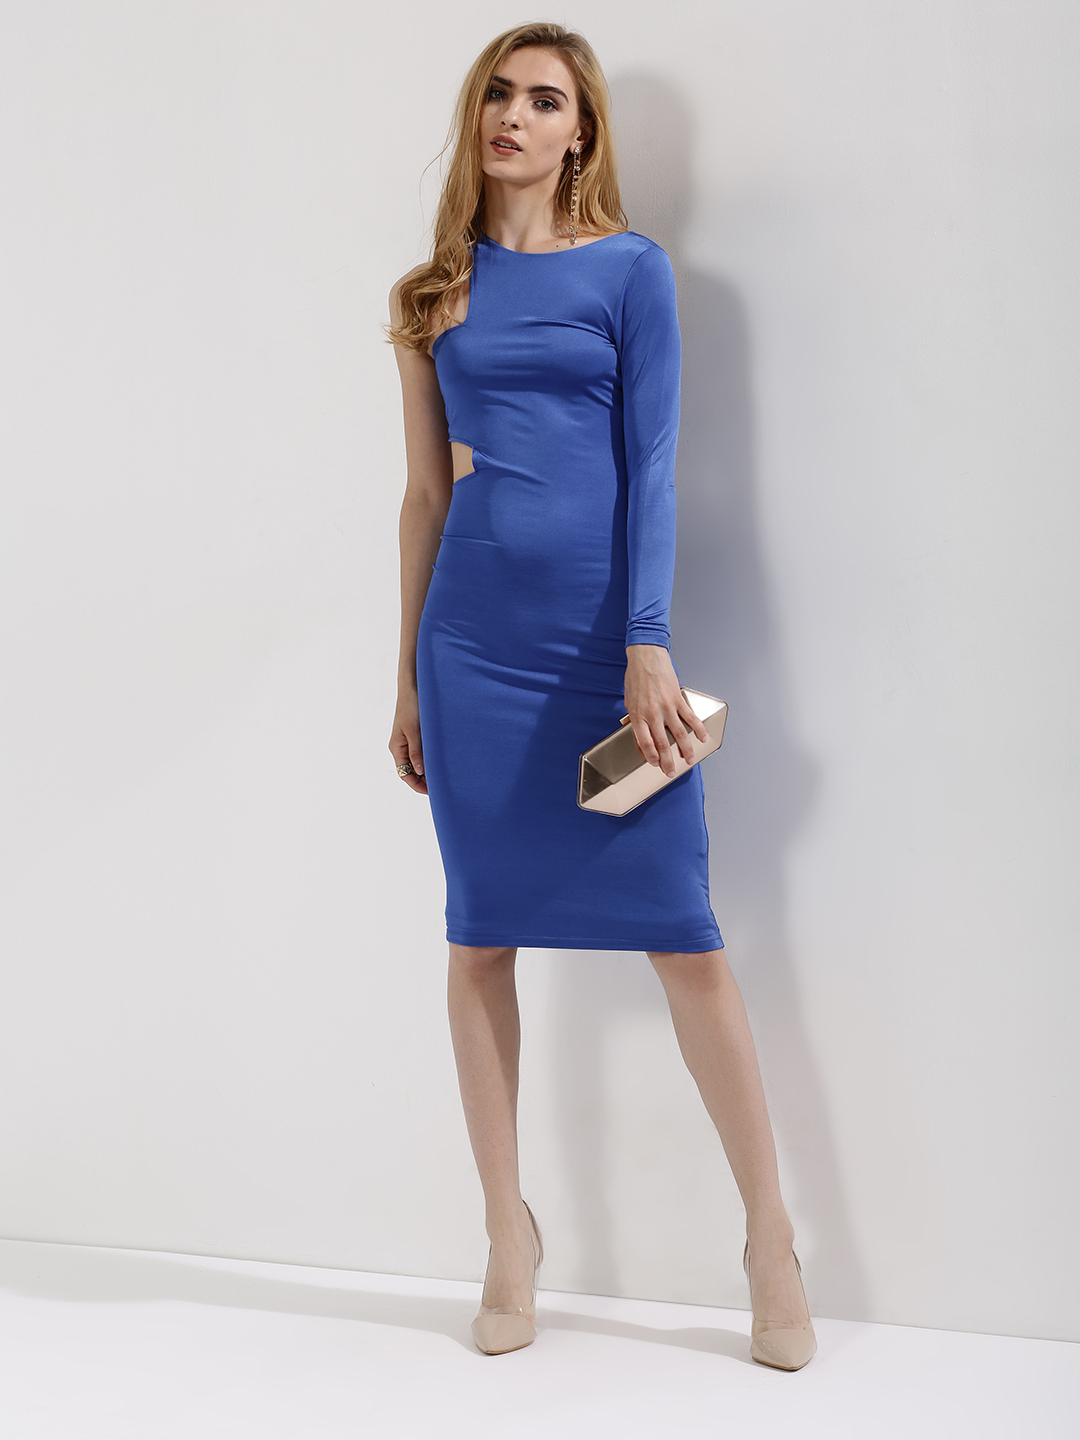 KOOVS Blue One Sleeve Bodycon Dress With Cutout Detailing 1